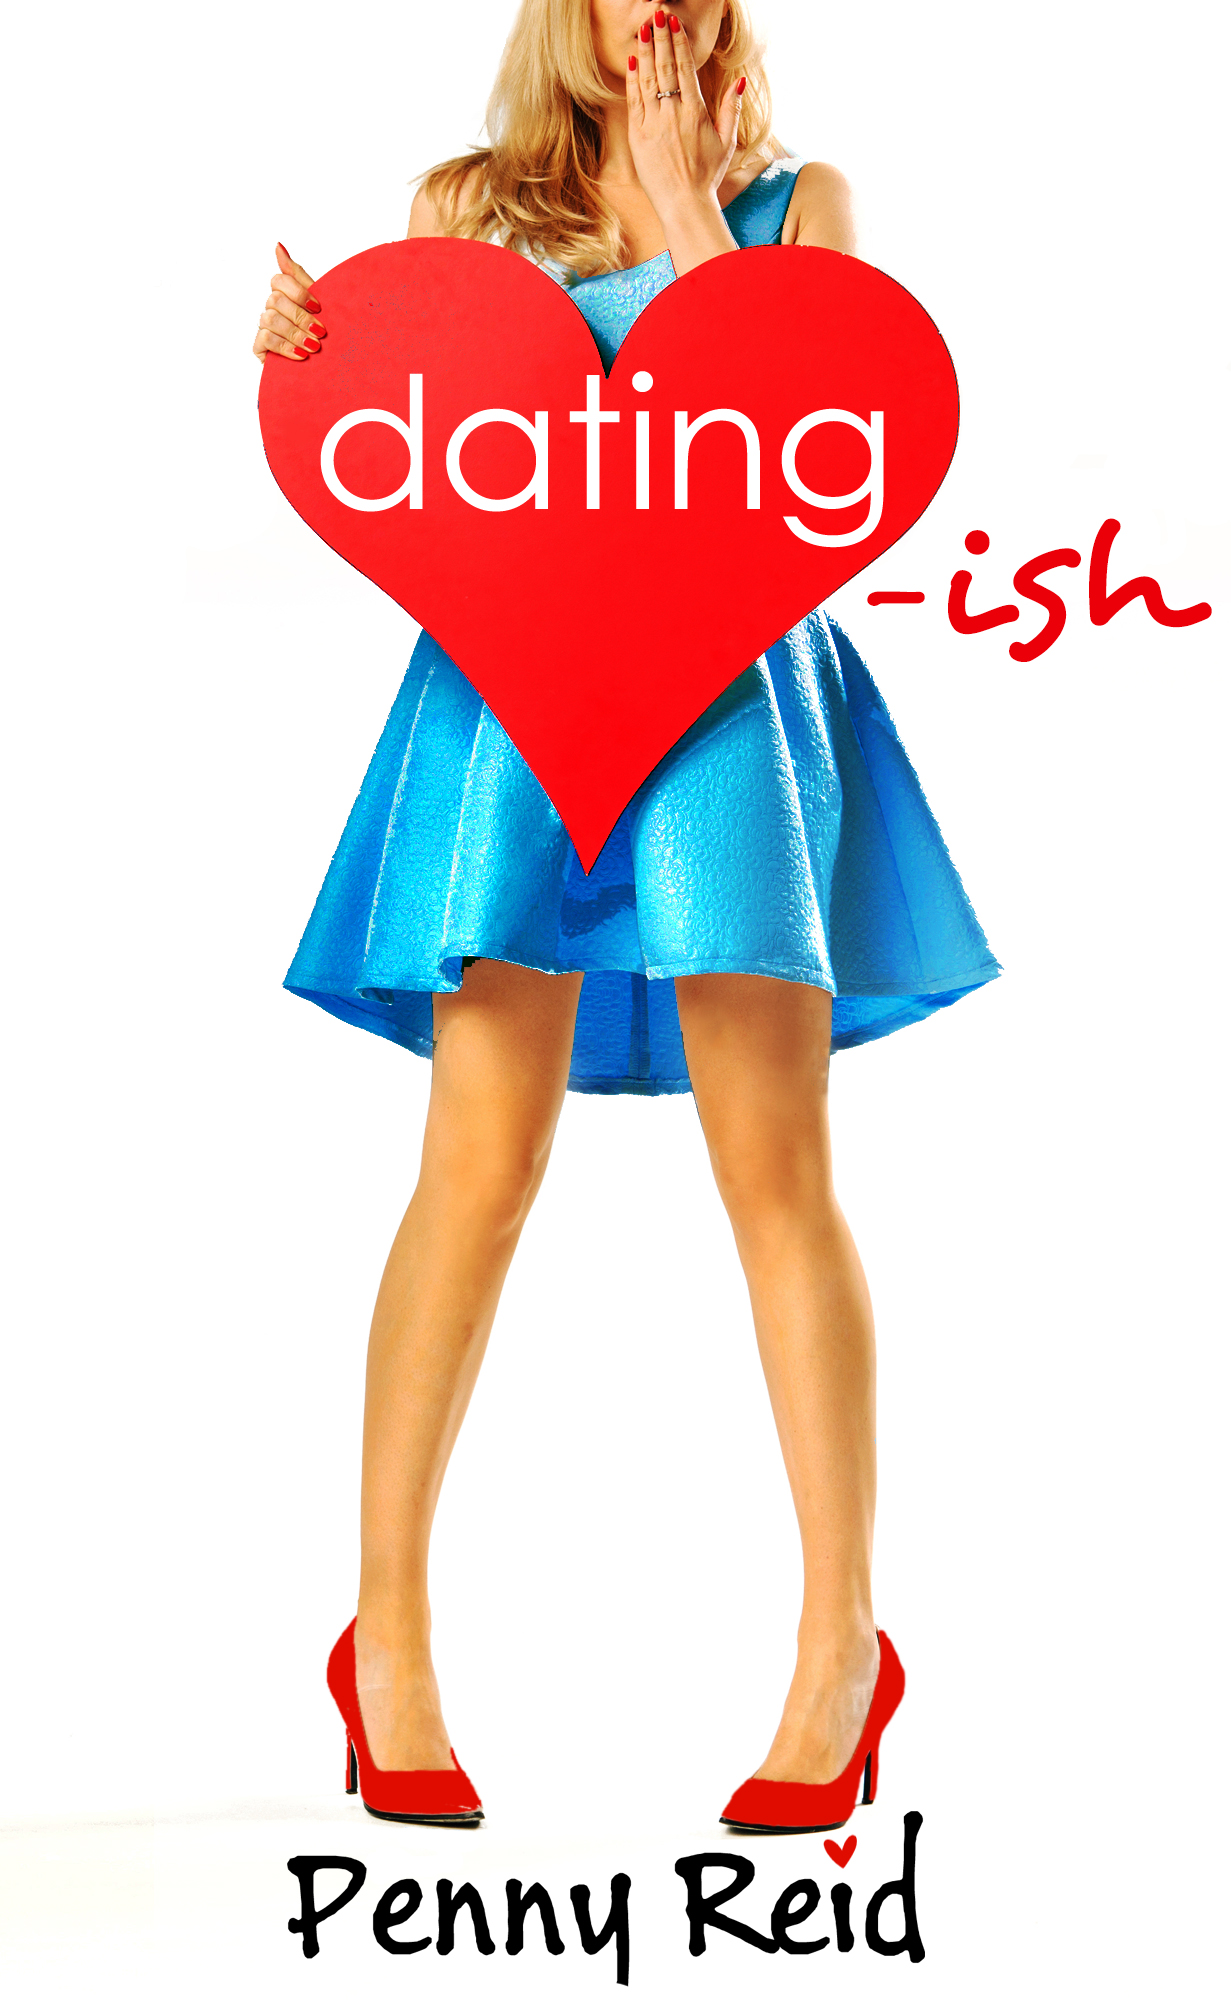 Dating-ish by Penny Reid